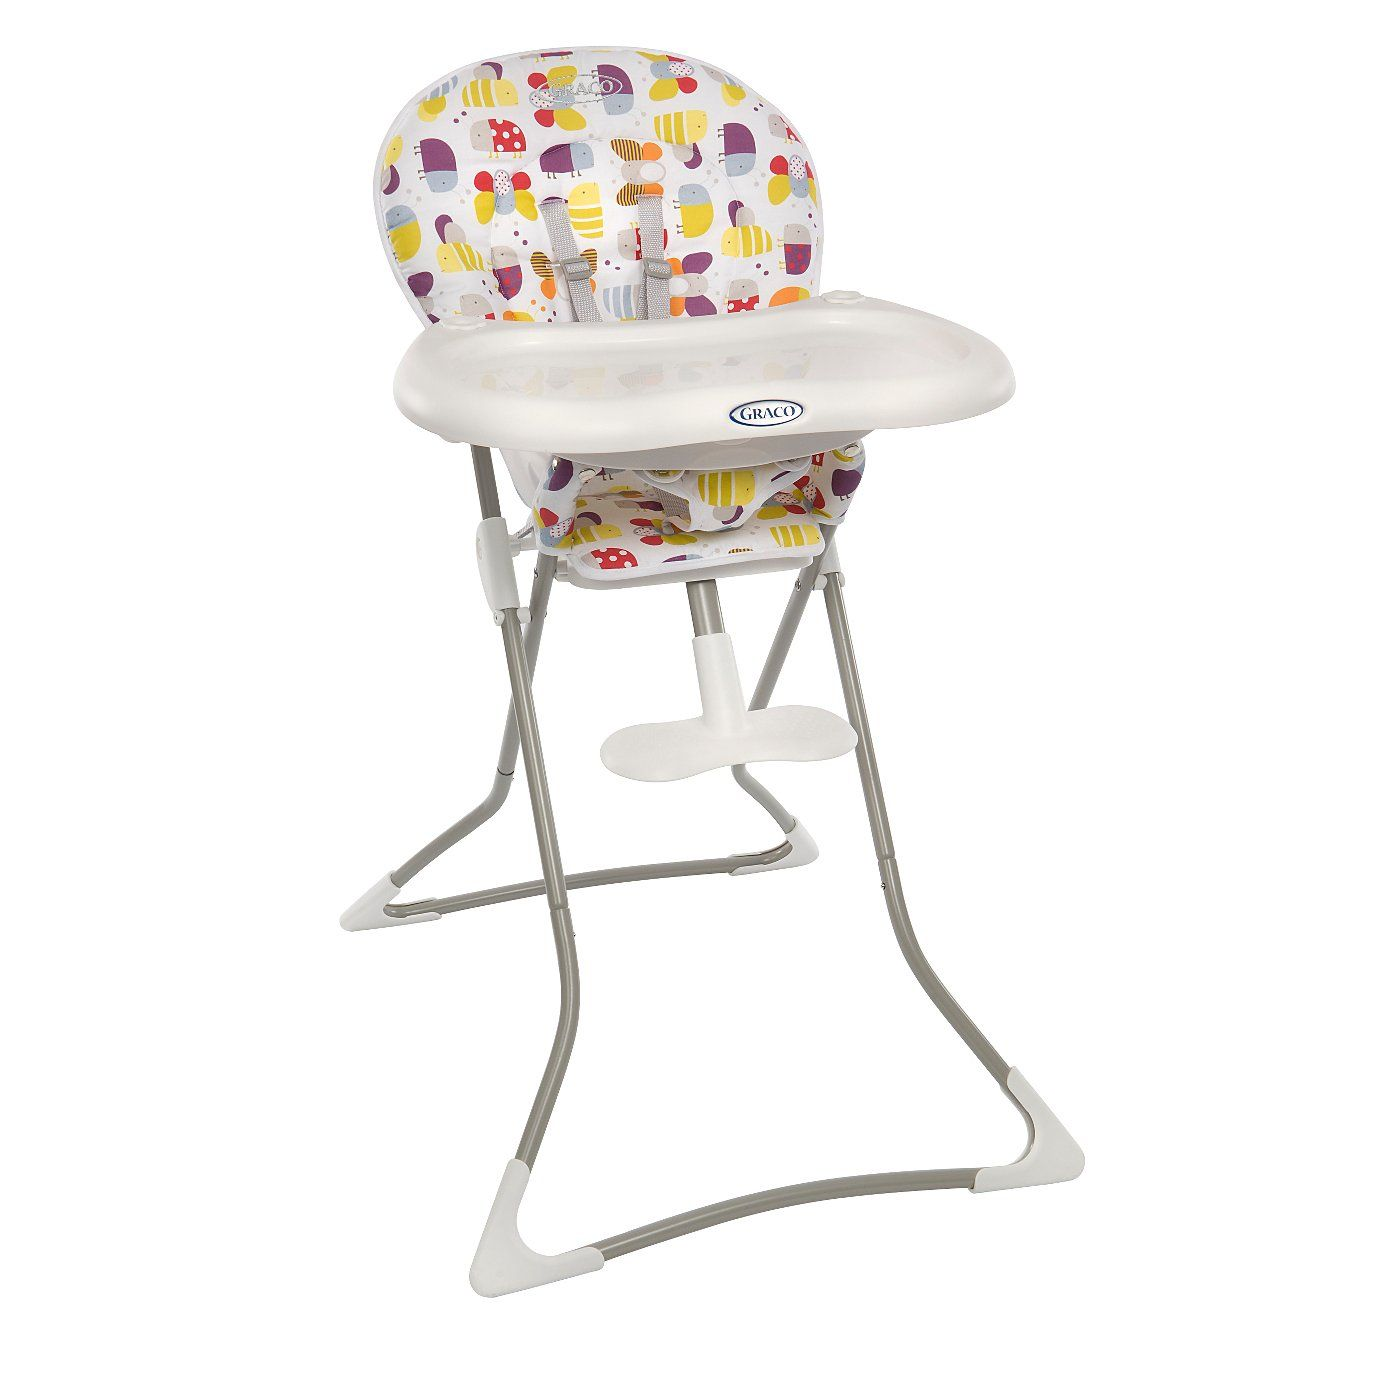 with online kmart chairs table unique highchair style kids fabulous for gray seats booster entrancing baby cheapest creative chair babies fold seat decor home slim attractive high appealing furniture